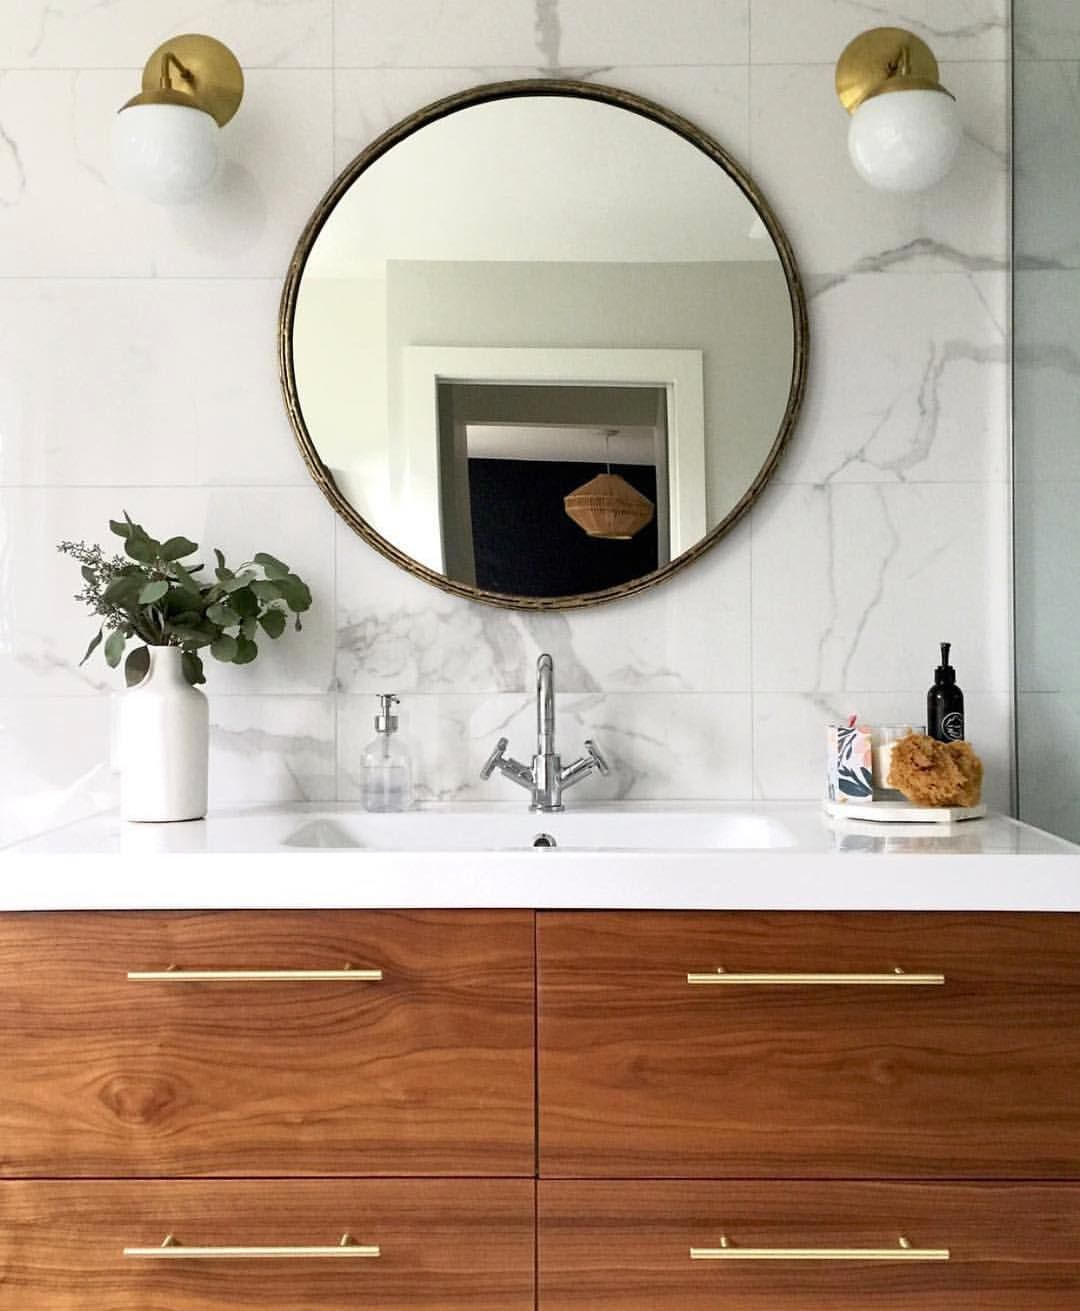 """Photo of Semihandmade on Instagram: """"@healthymumma613 showing off our Walnut fronts (alongside the perfect amount of white and brass) on an IKEA Godmorgon cabinet!"""""""